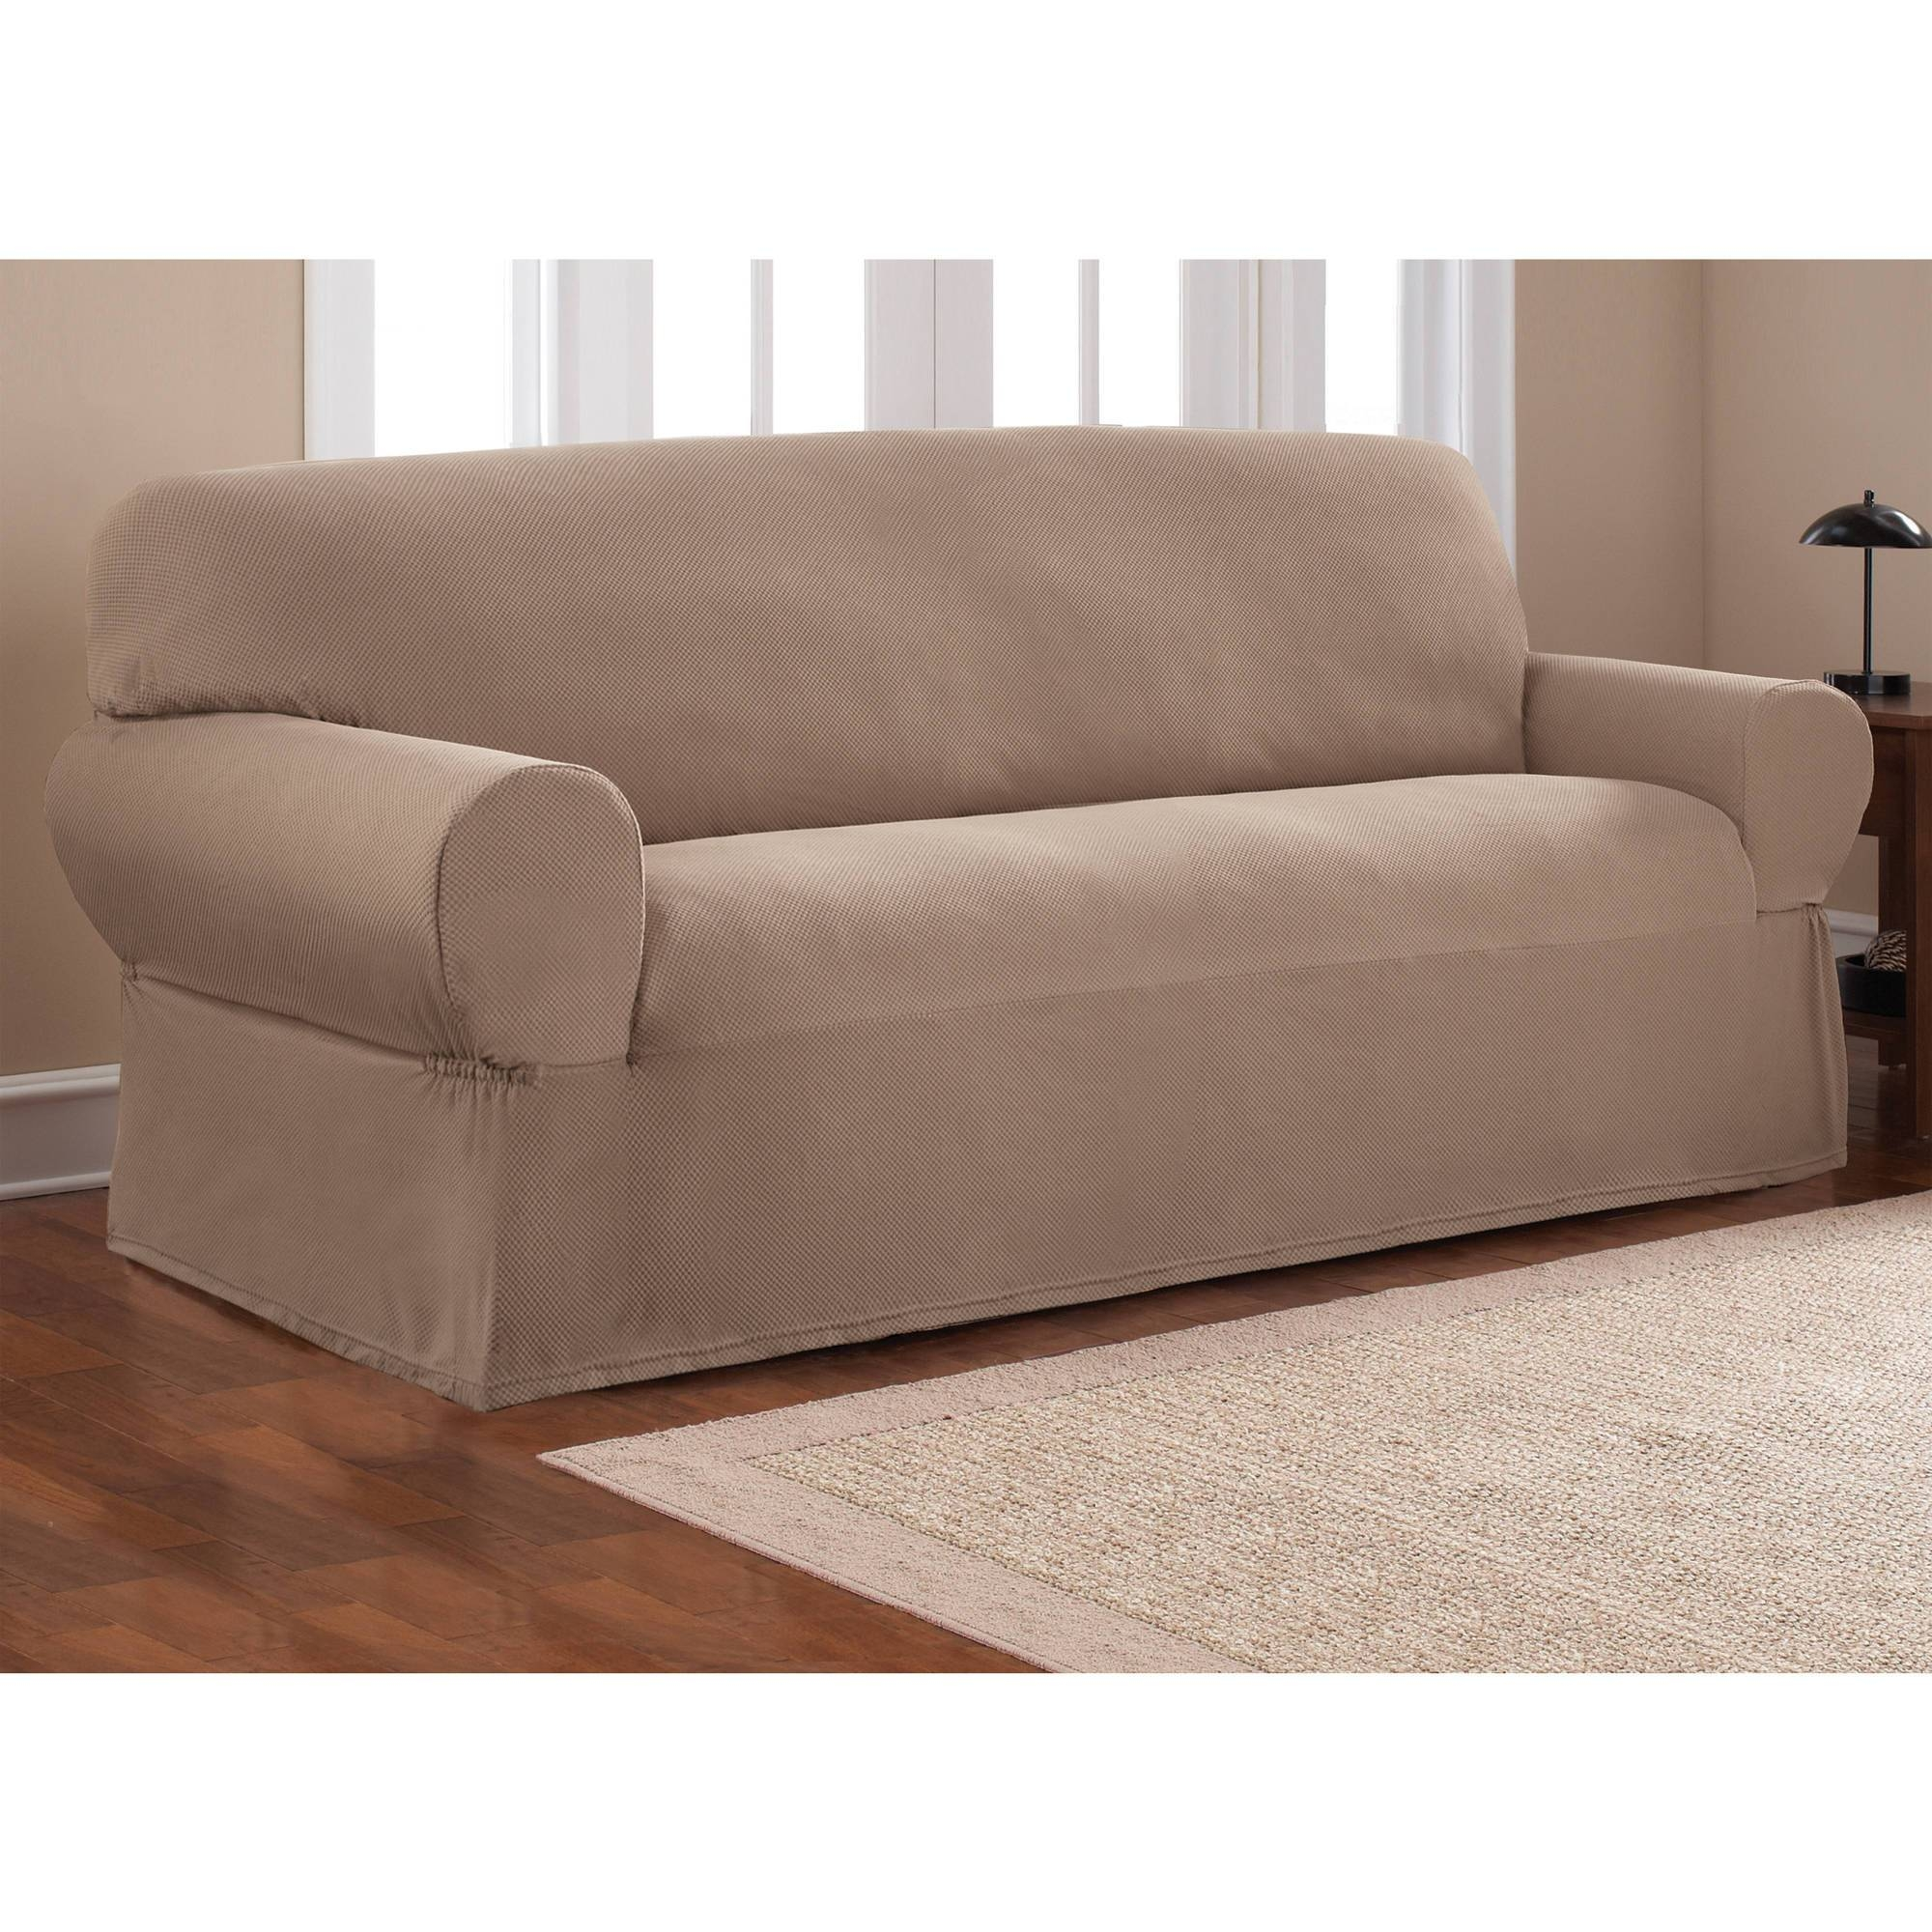 Mainstays 1-Piece Stretch Fabric Sofa Slipcover - Walmart with Large Sofa Slipcovers (Image 12 of 30)